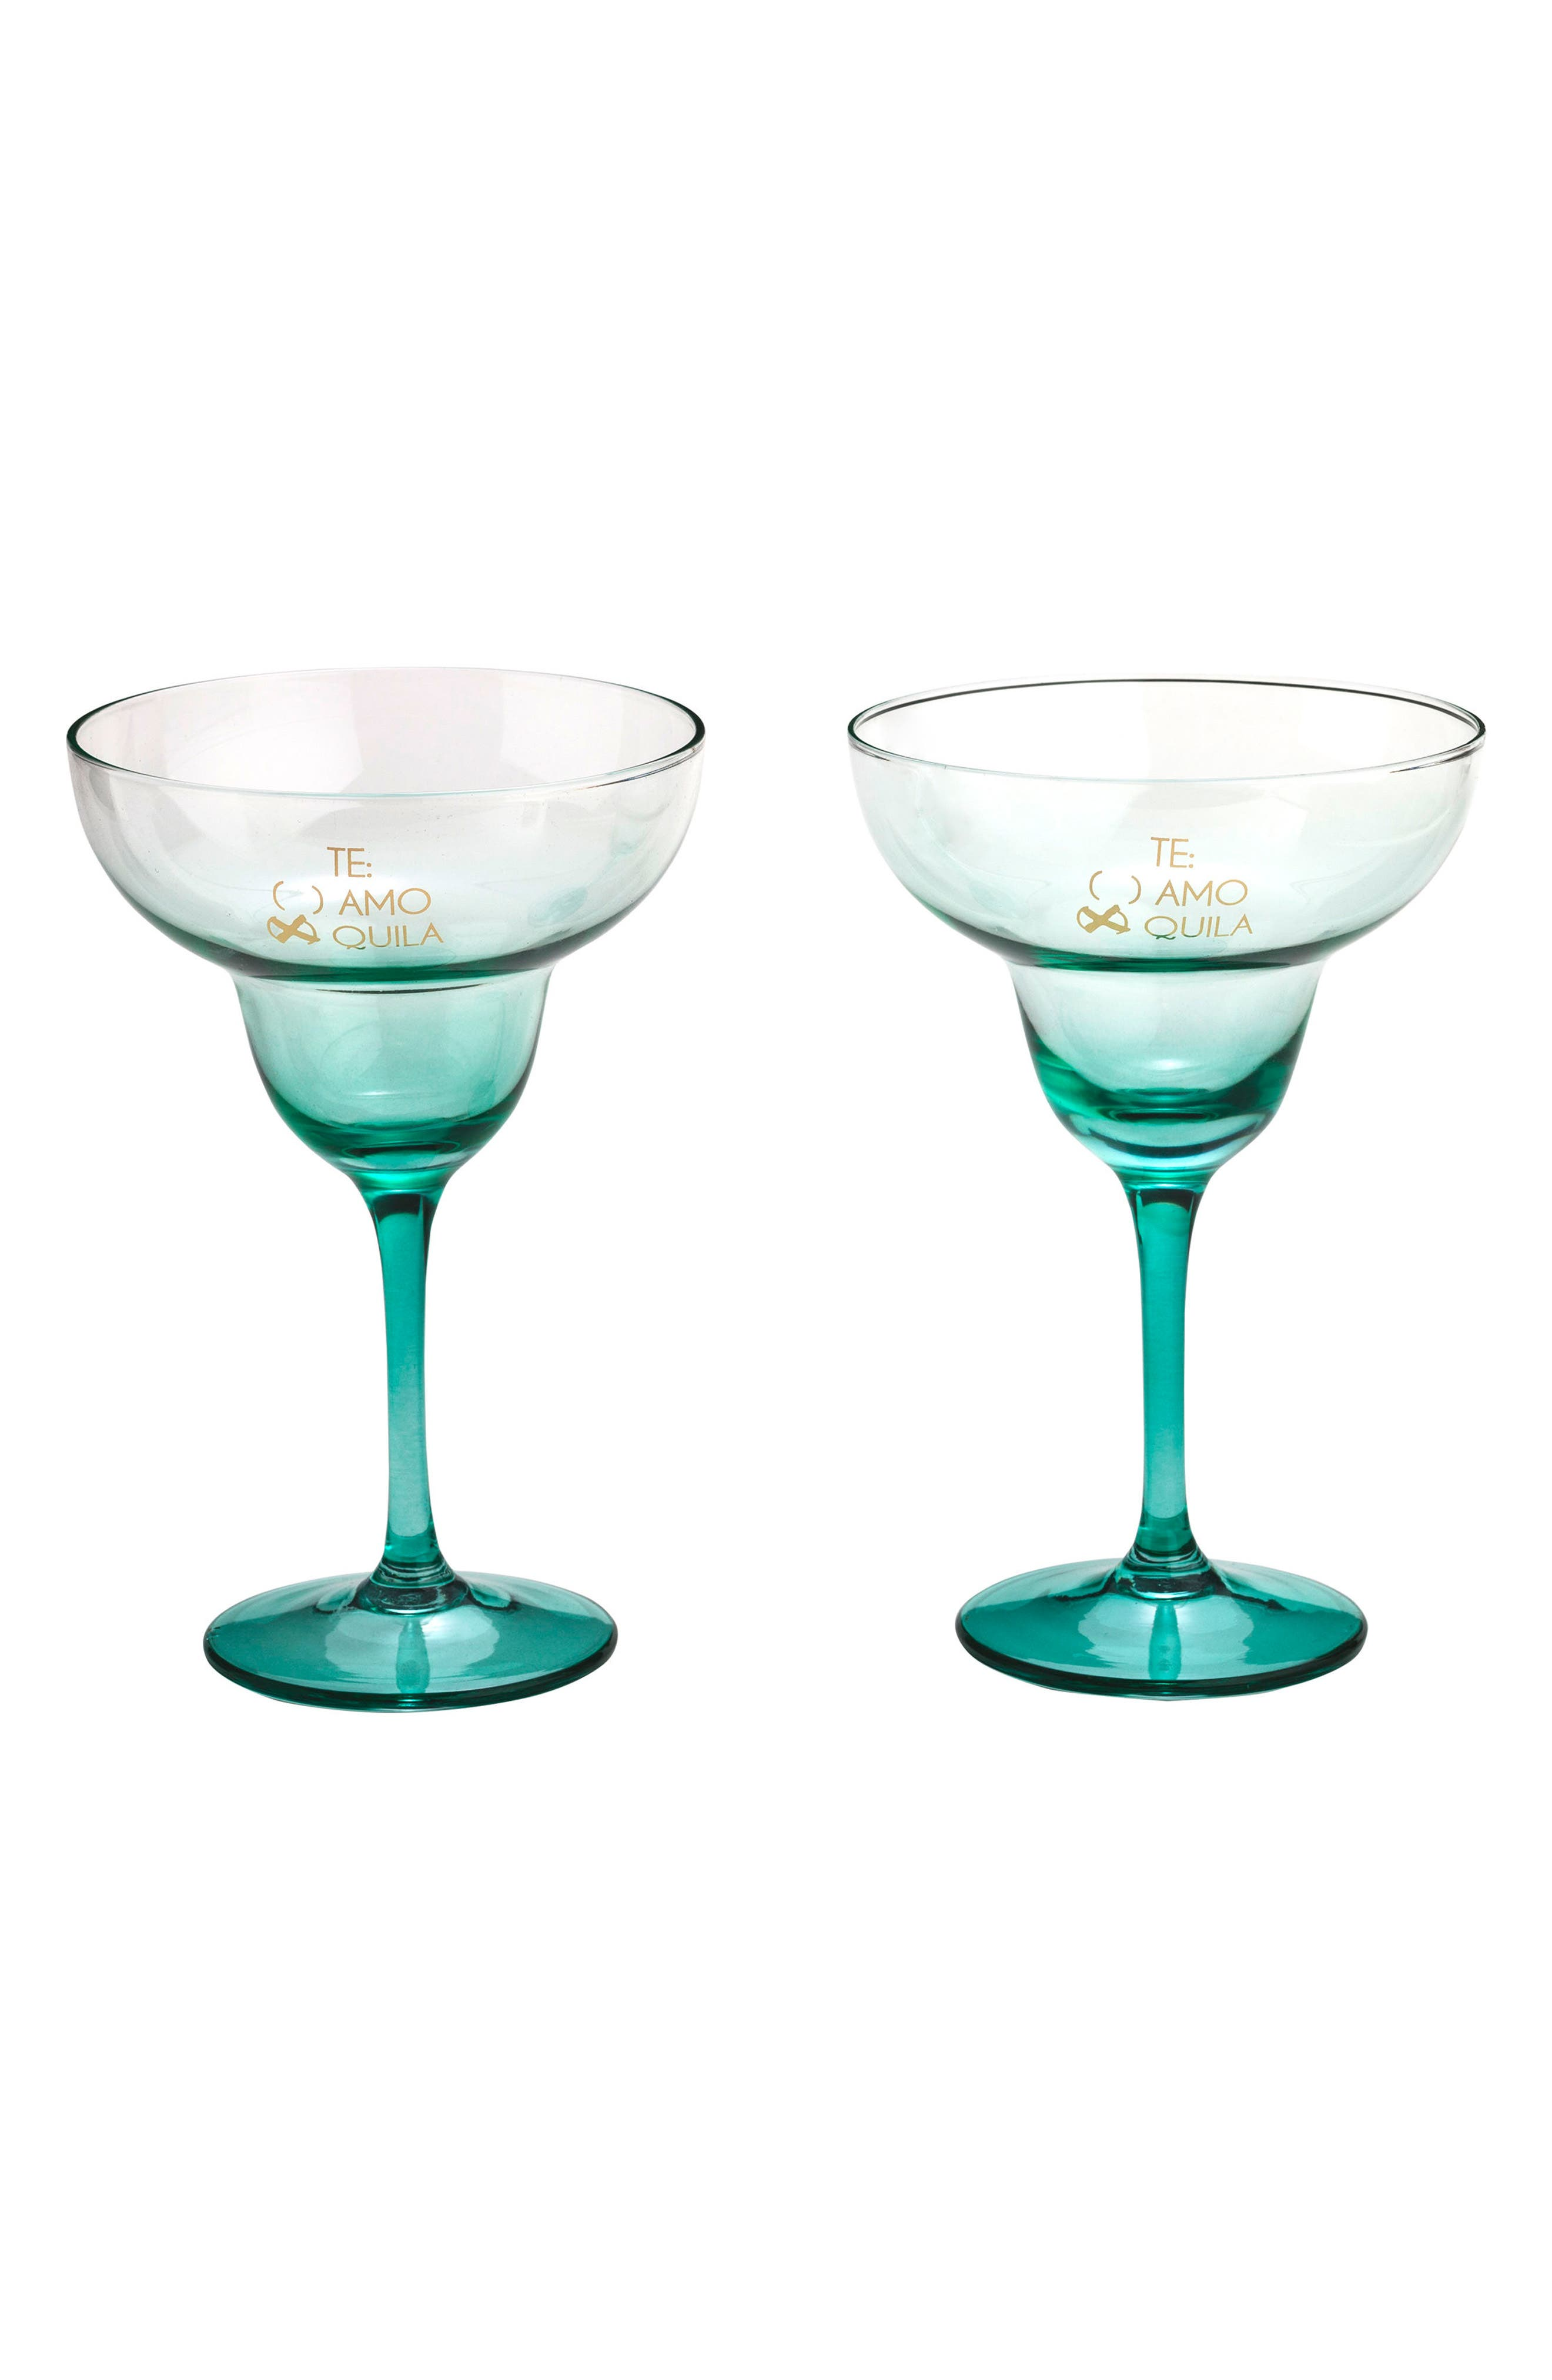 Te Amo x Quila Set of 2 Margarita Glasses,                         Main,                         color, GLASS/ GOLD